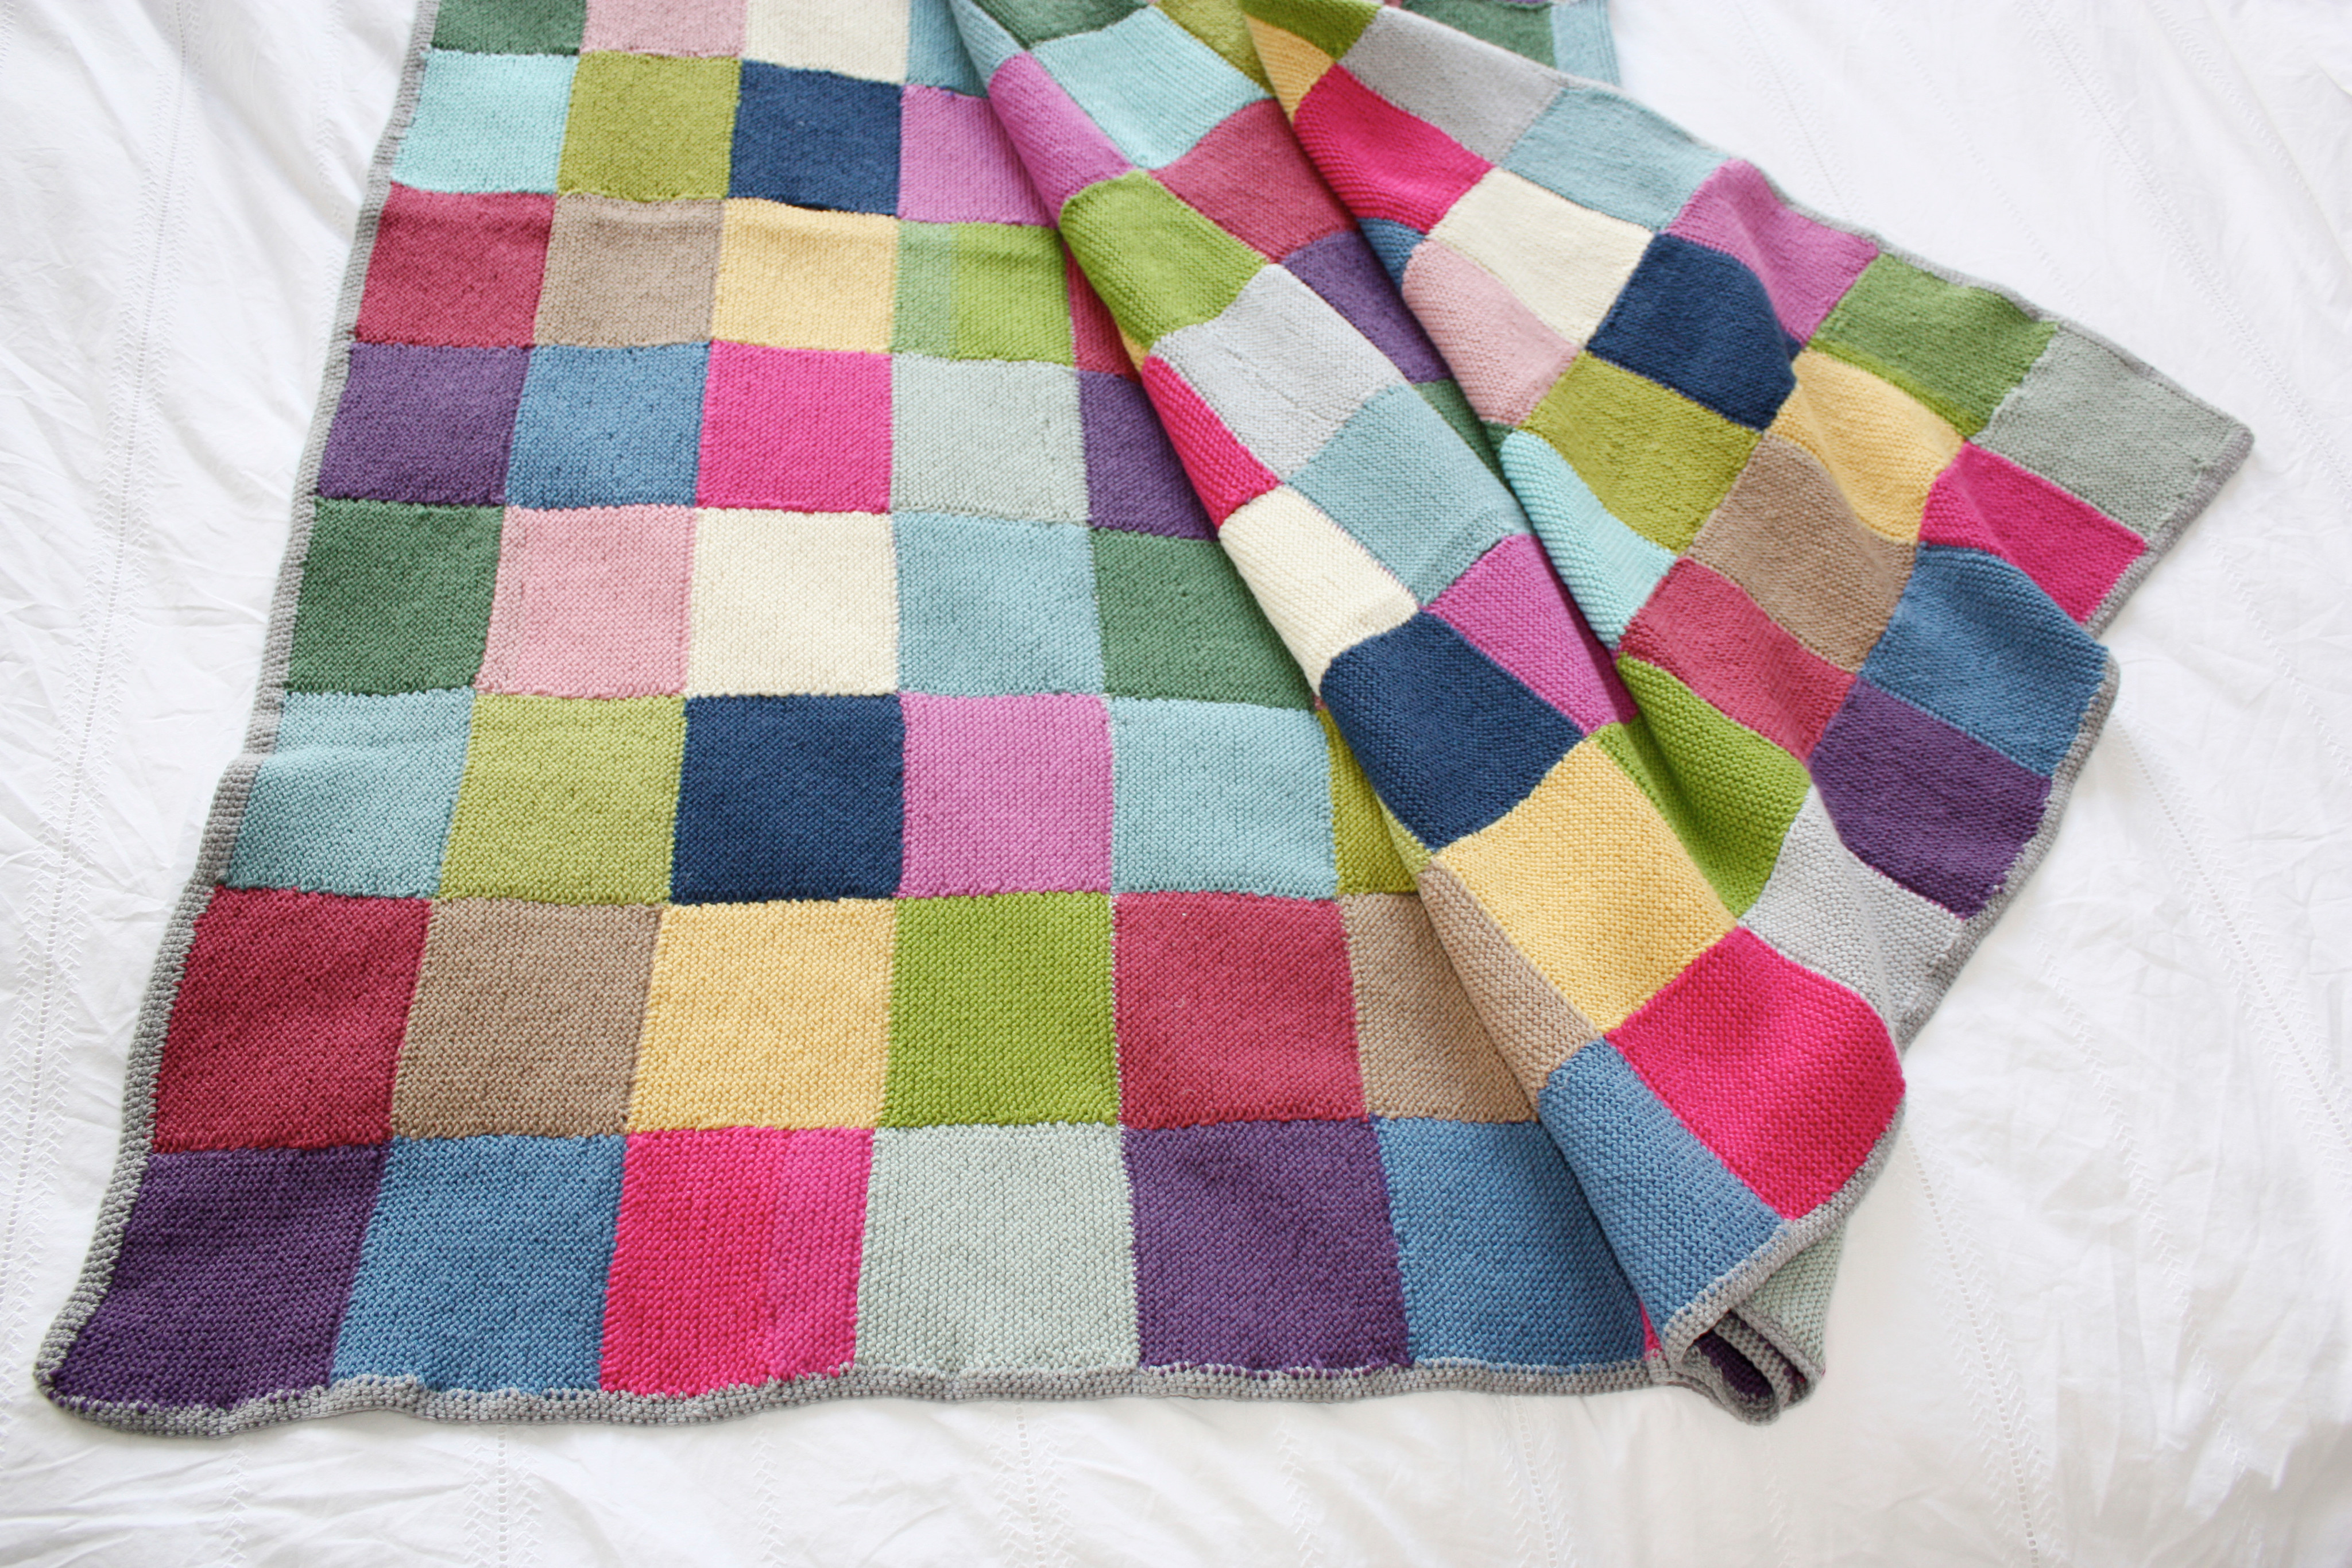 Photo Patchwork Patchwork Blanket · Extract From Winter Knits Made Easy By